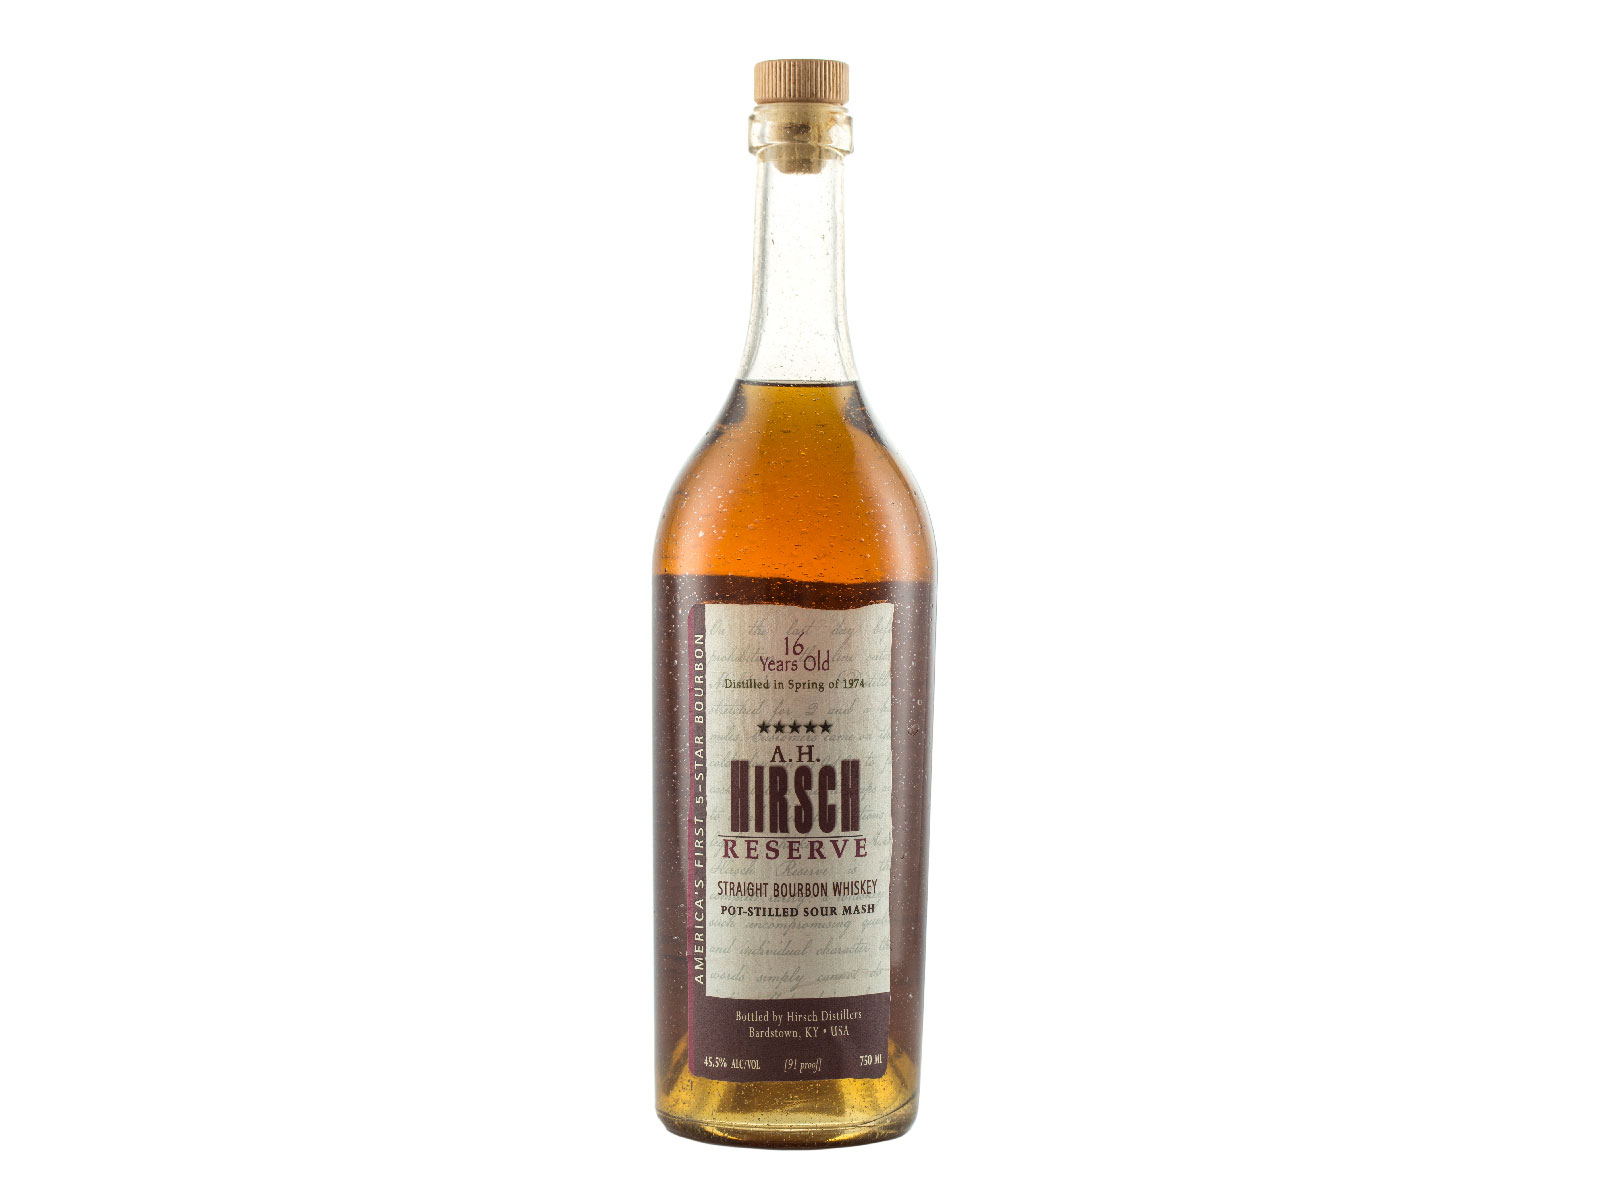 A.H. Hirsch Reserve 16 Year Old Straight Bourbon Whiskey